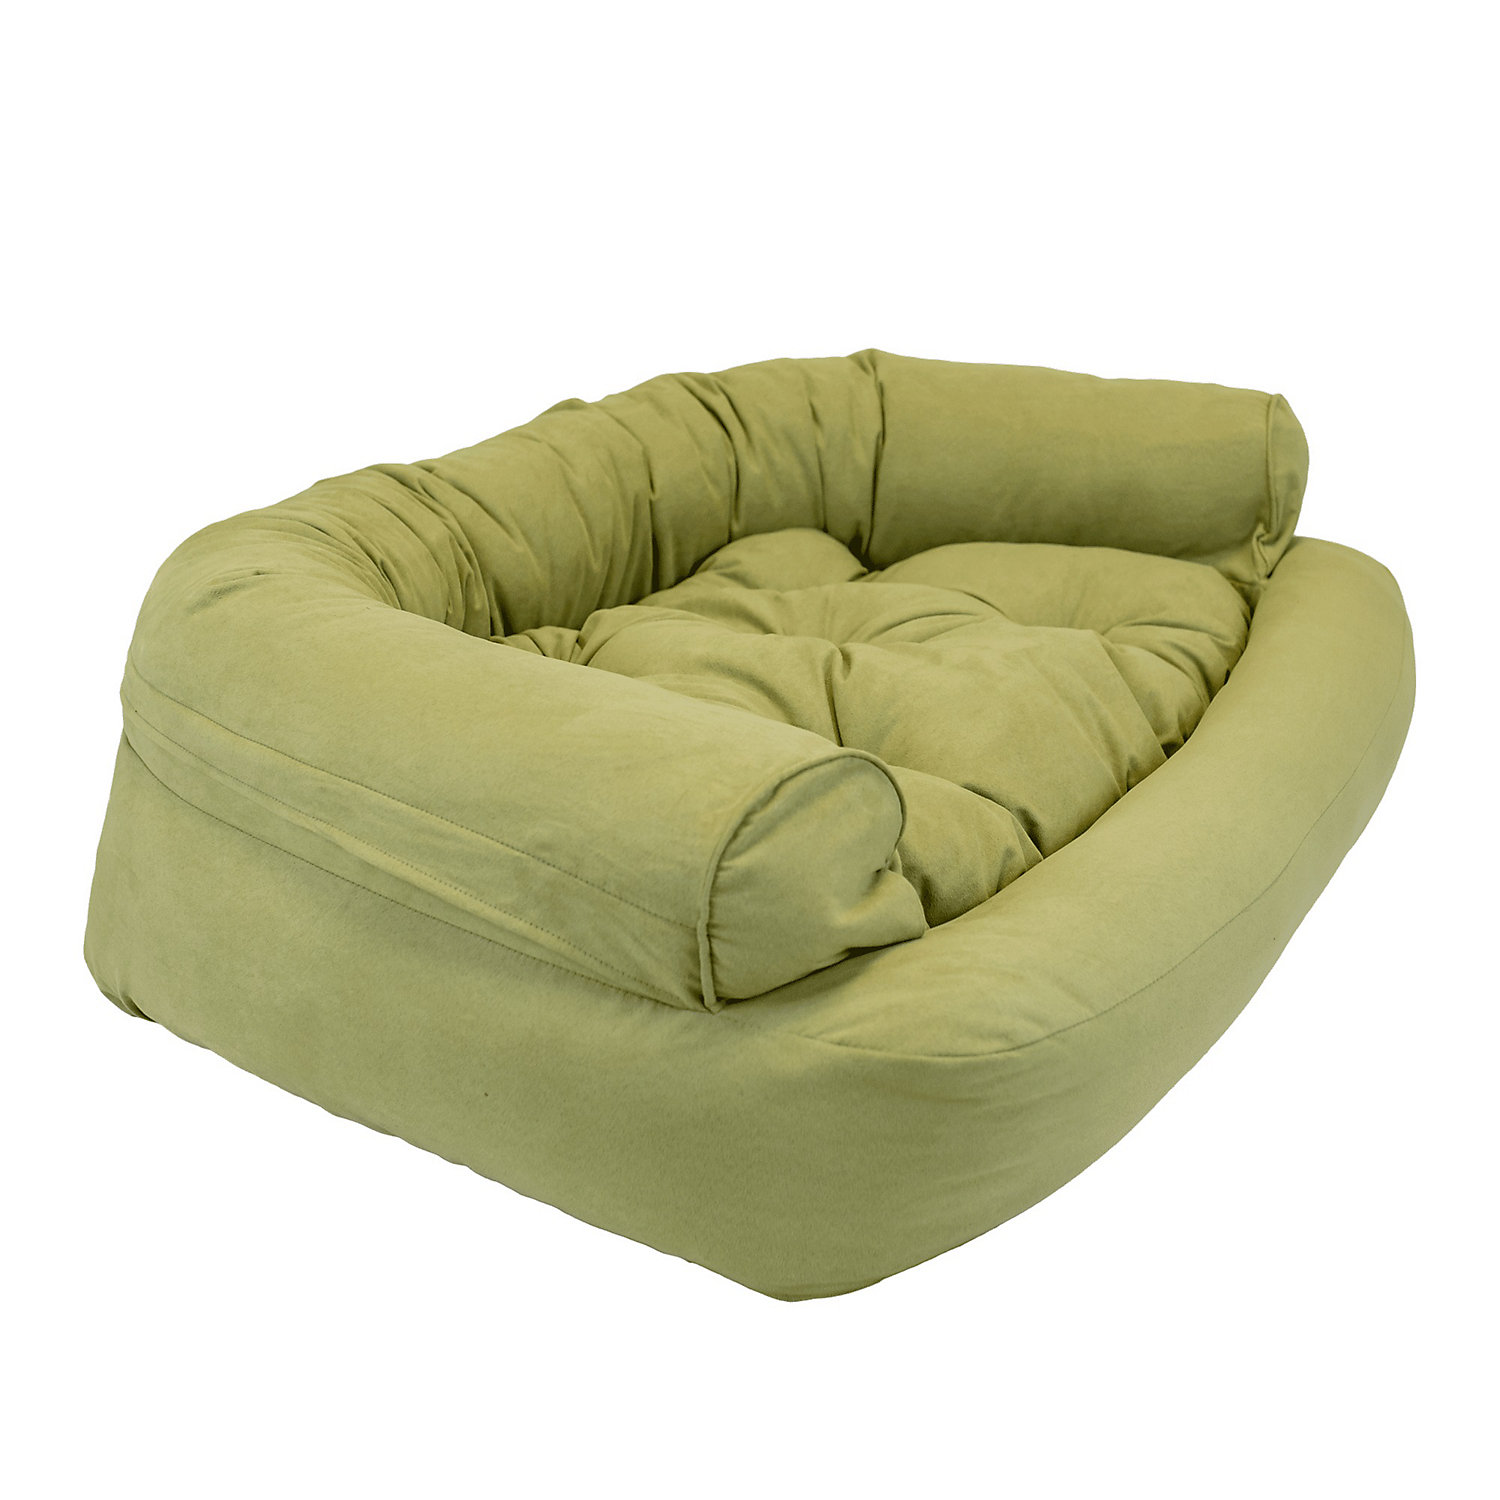 Snoozer Luxury Overstuffed Pet Sofa in Lime 36 L x 54 W XLarge